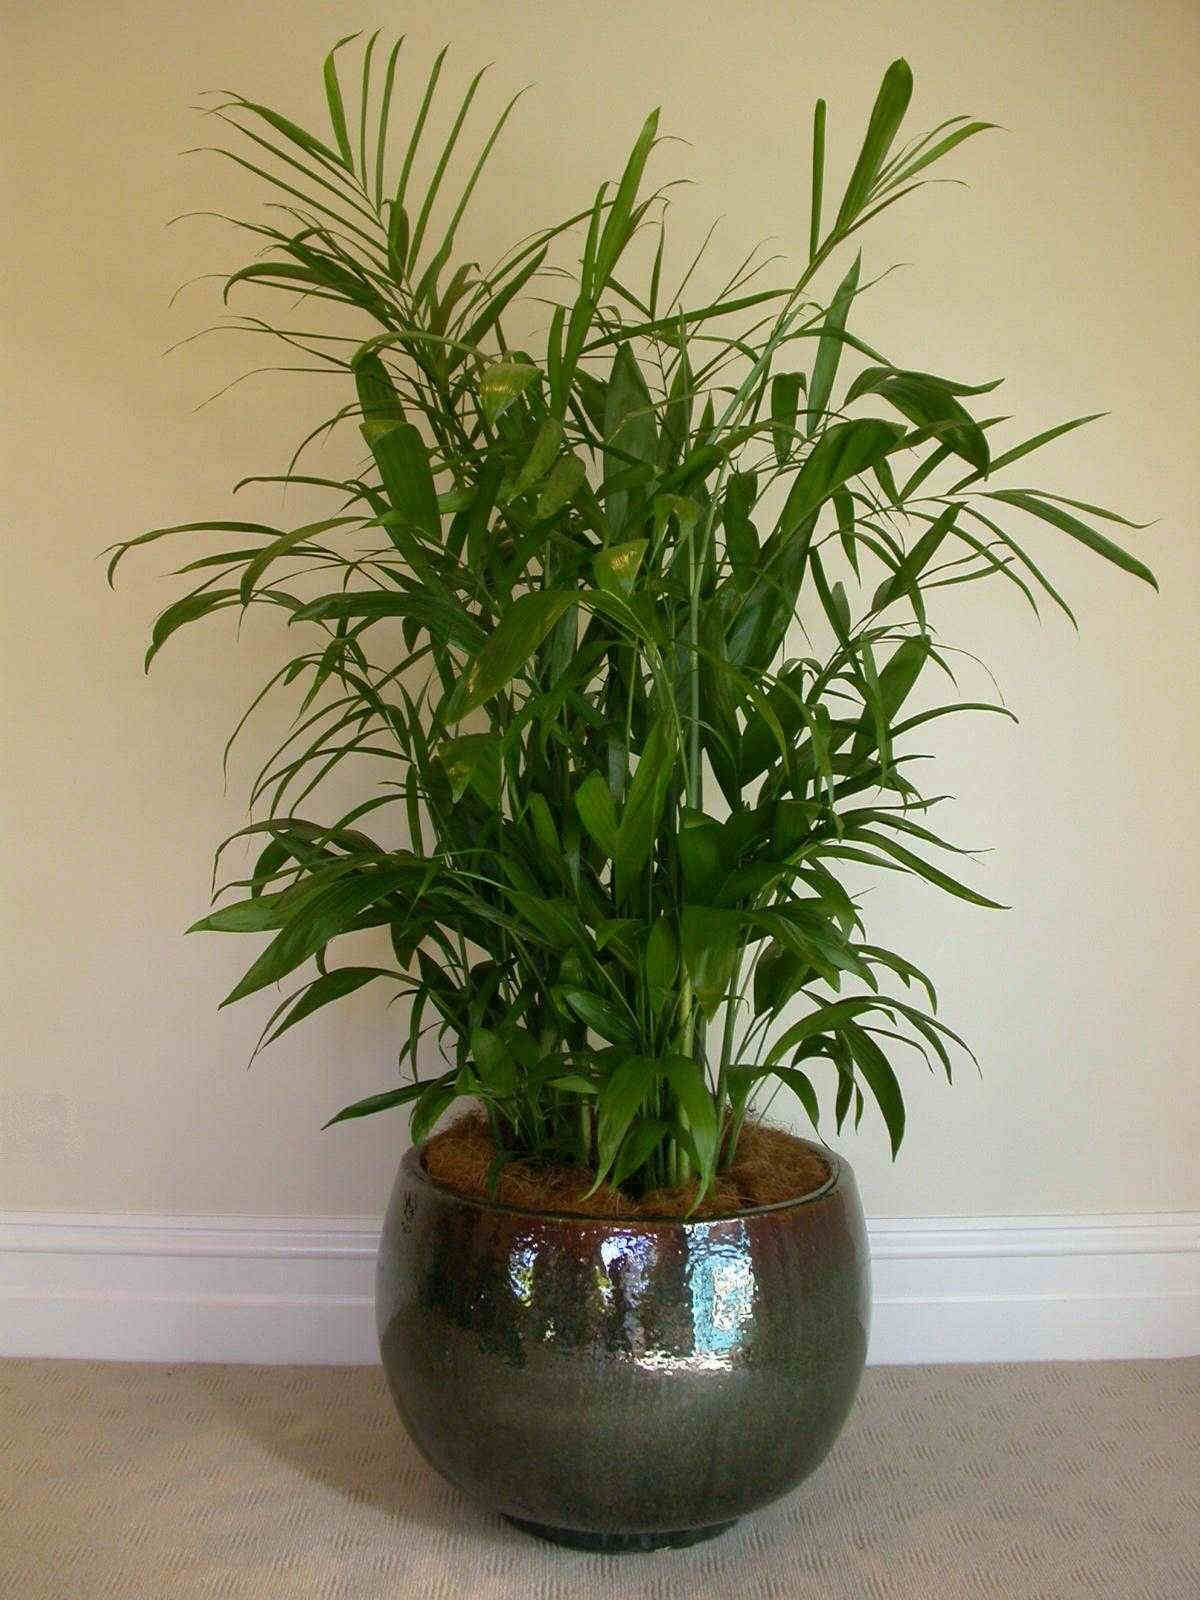 nontoxic house plants for better IAQ Living Room